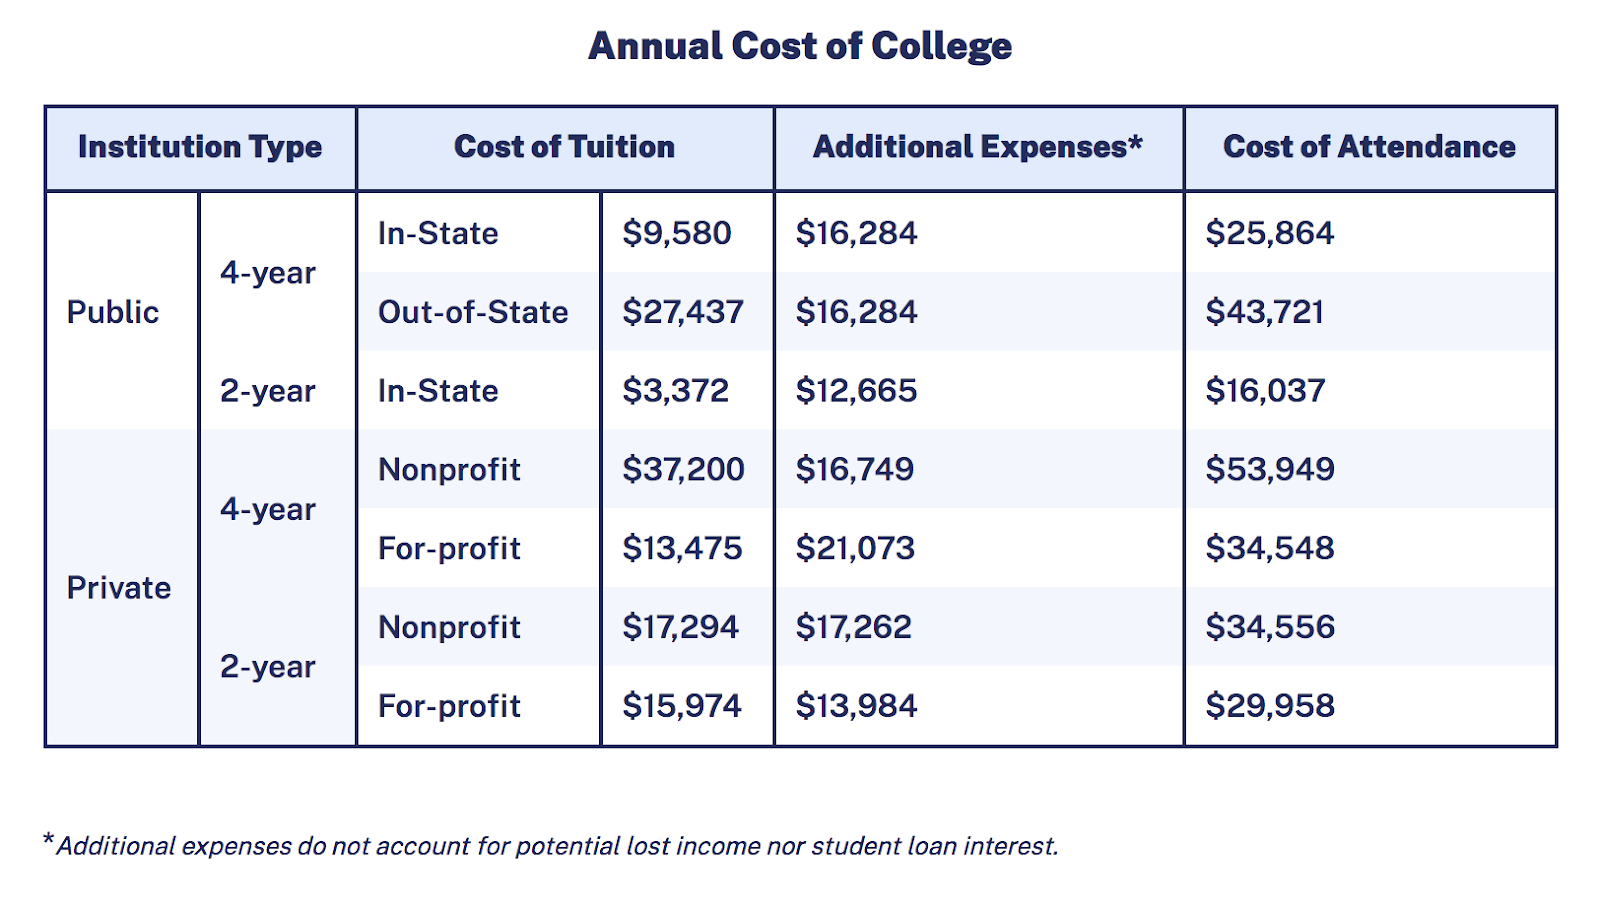 Table showing the annual cost of college, including tuition and added expenses.